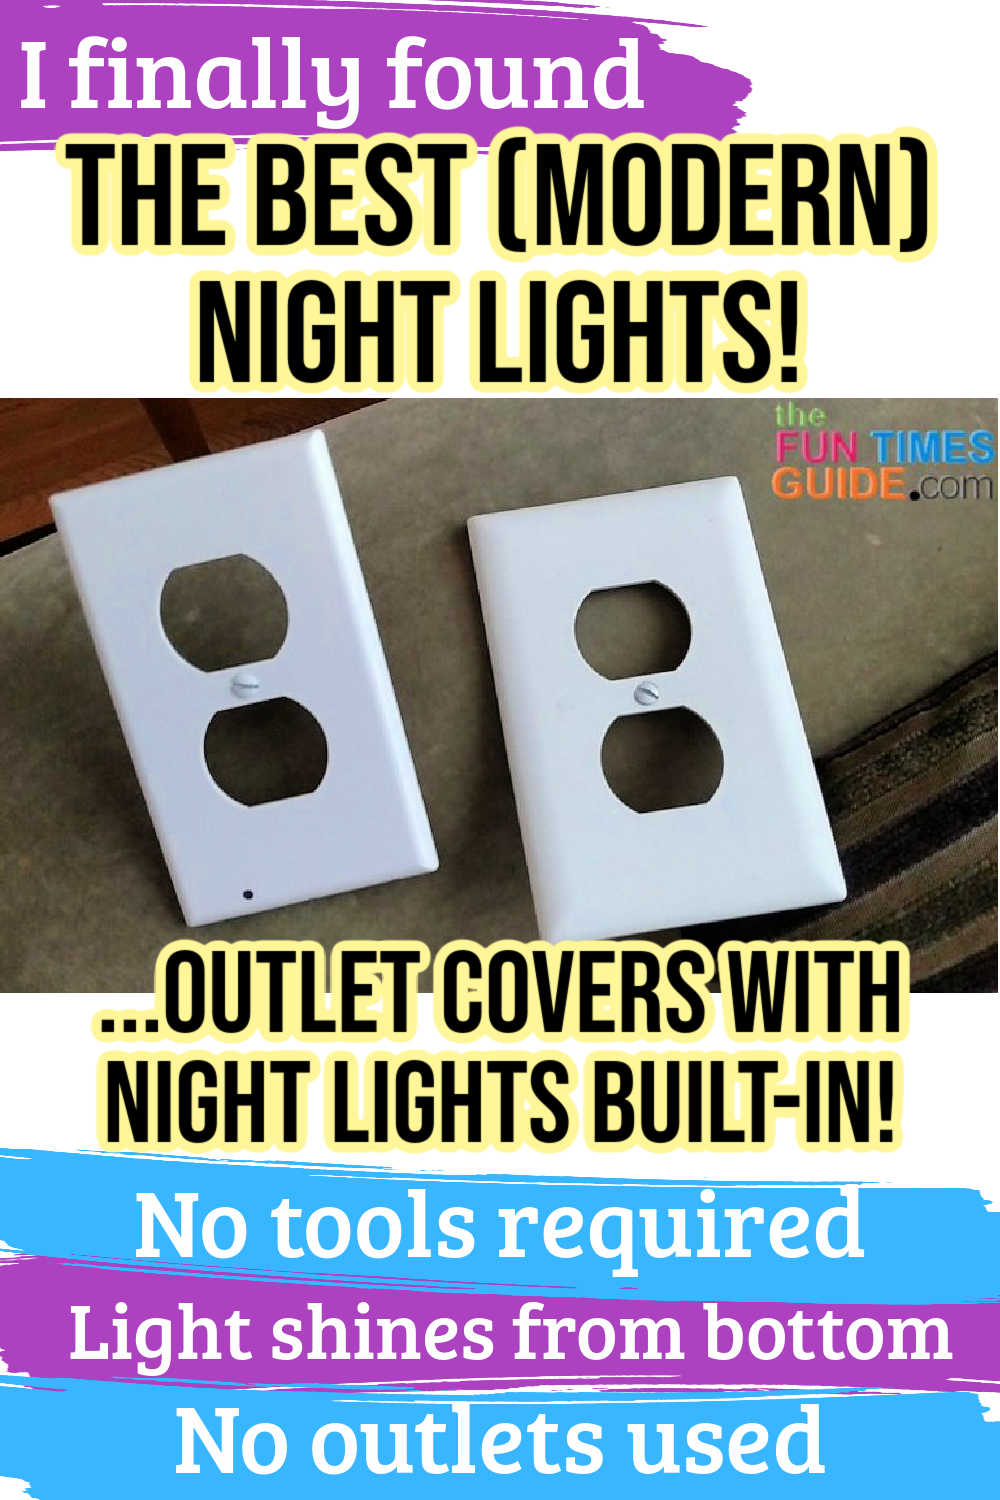 Outlet Cover Night Lights: These Space-Saving LED Night Light Outlets Replace Your Regular Outlet Covers (Leaving Your Outlet Plugs Free For Other Things!)